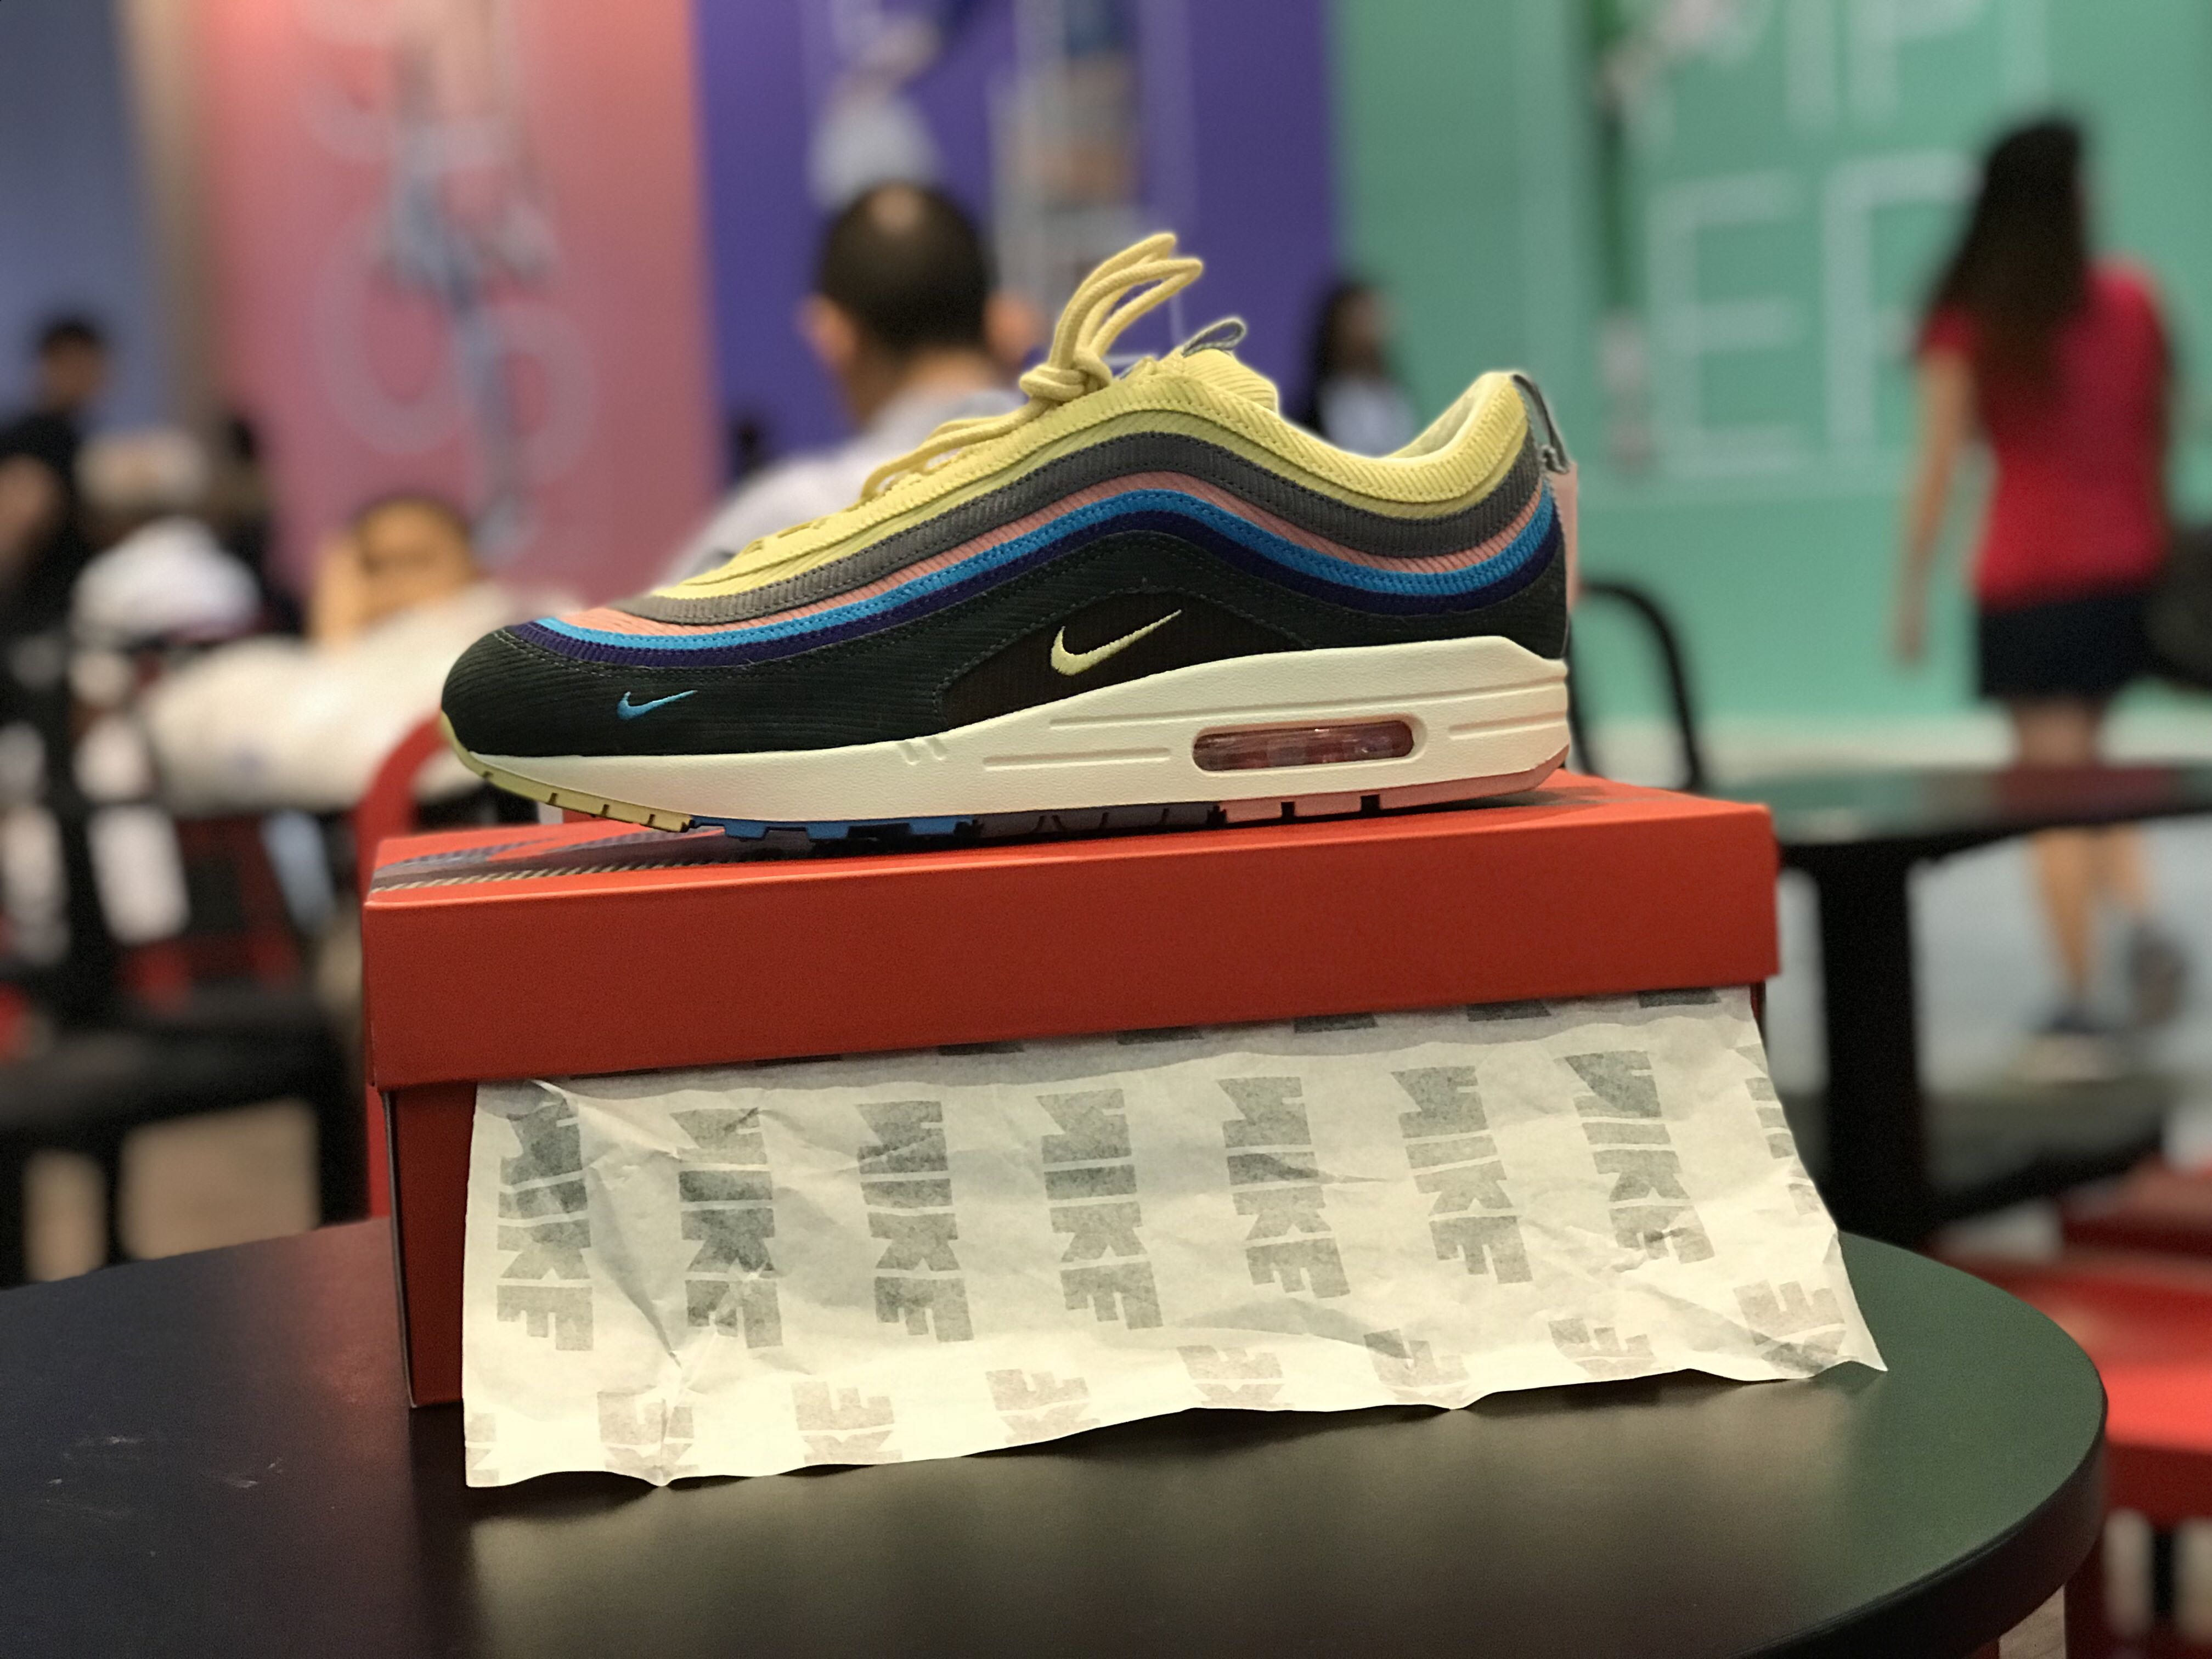 quality design a33c8 ed87d WTT US9.5 for 8.5 or 9 nike air max 1/97 sean wotherspoon ...